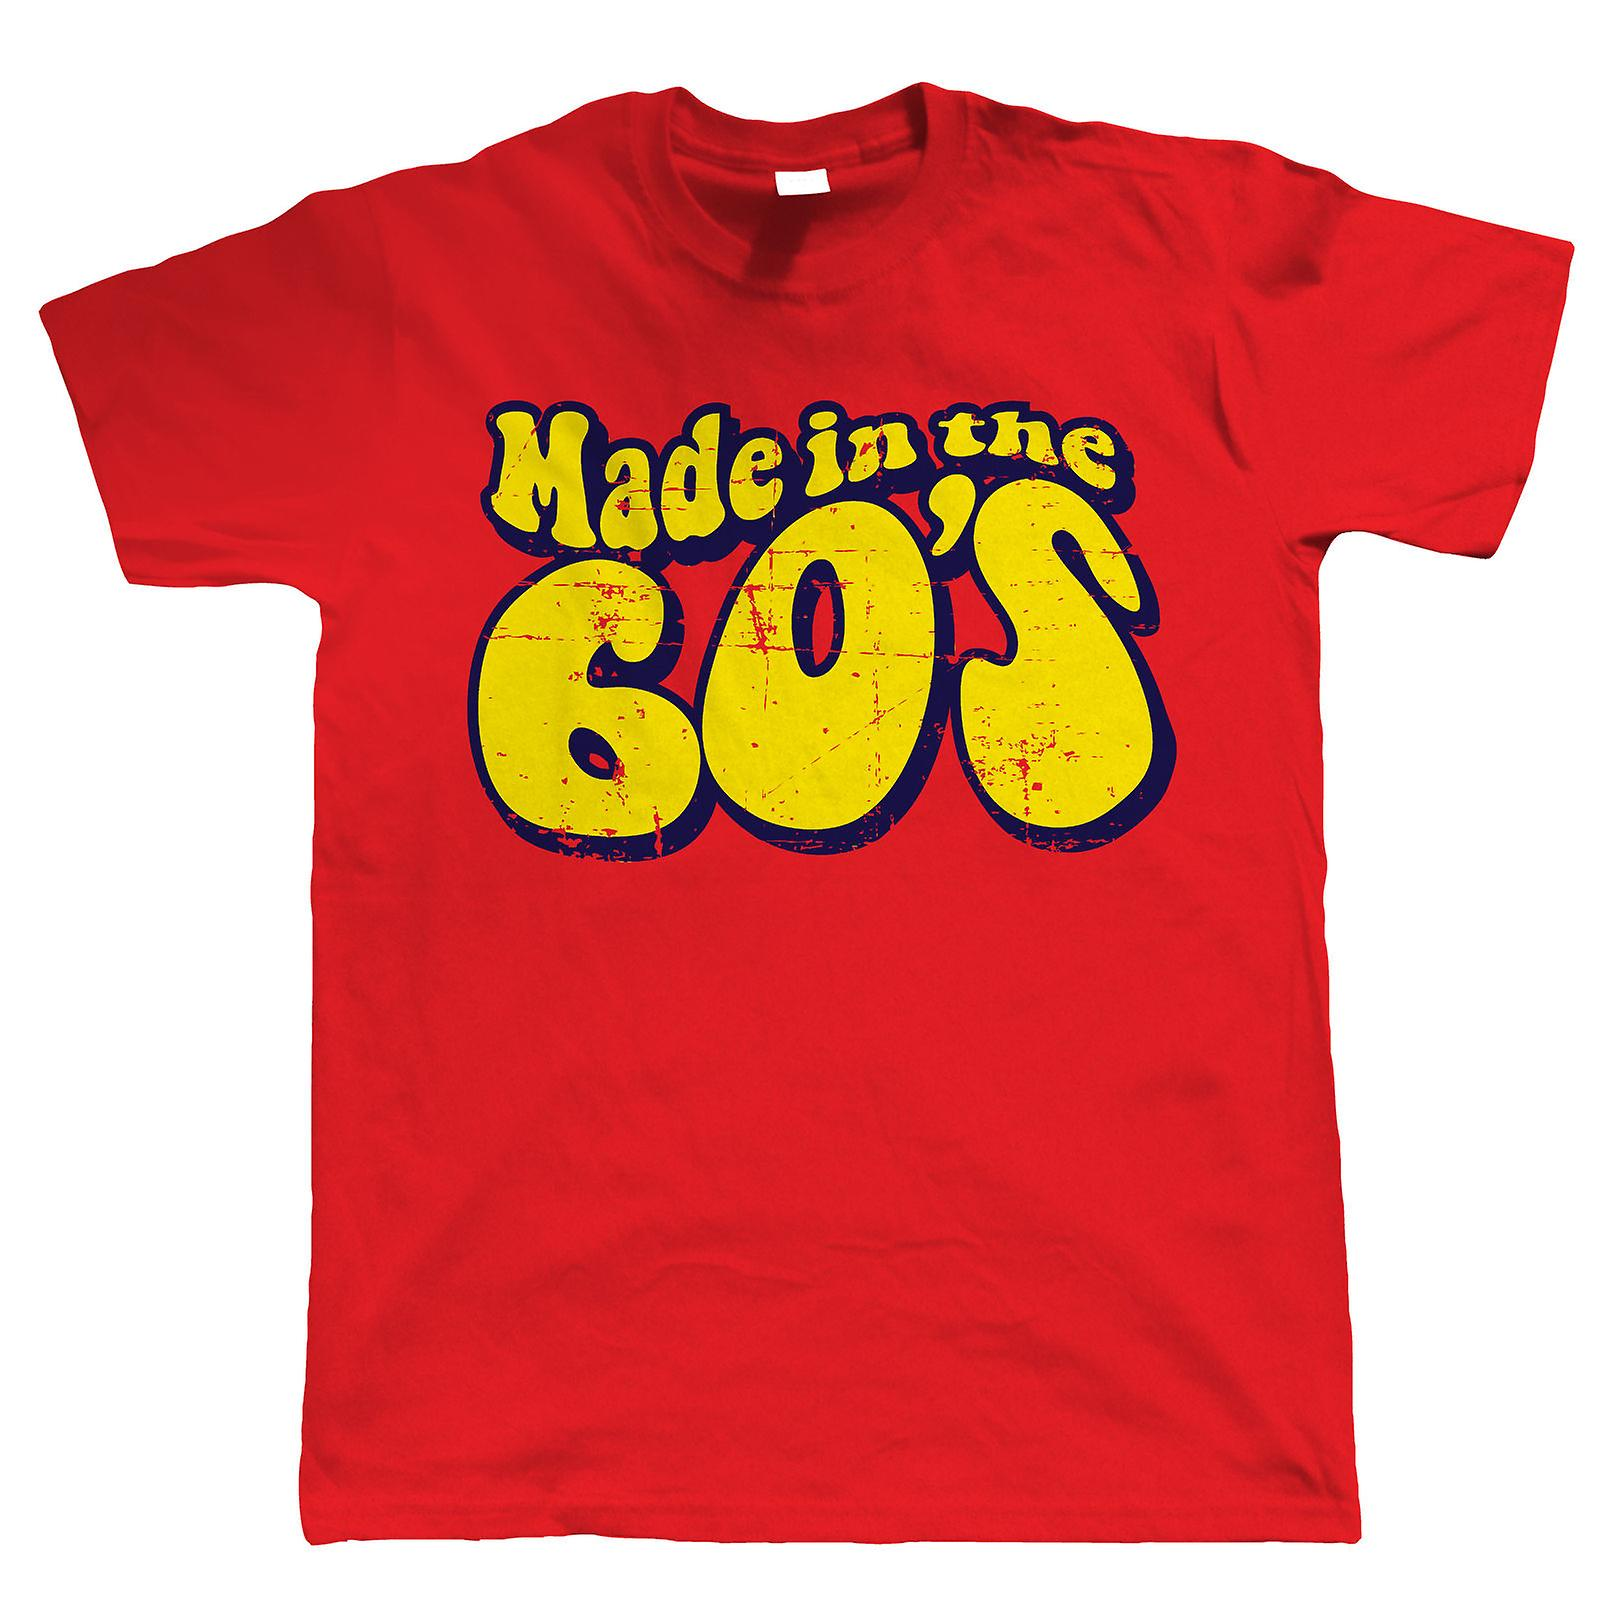 Made In The 60s Funny 50th Birthday T Shirt